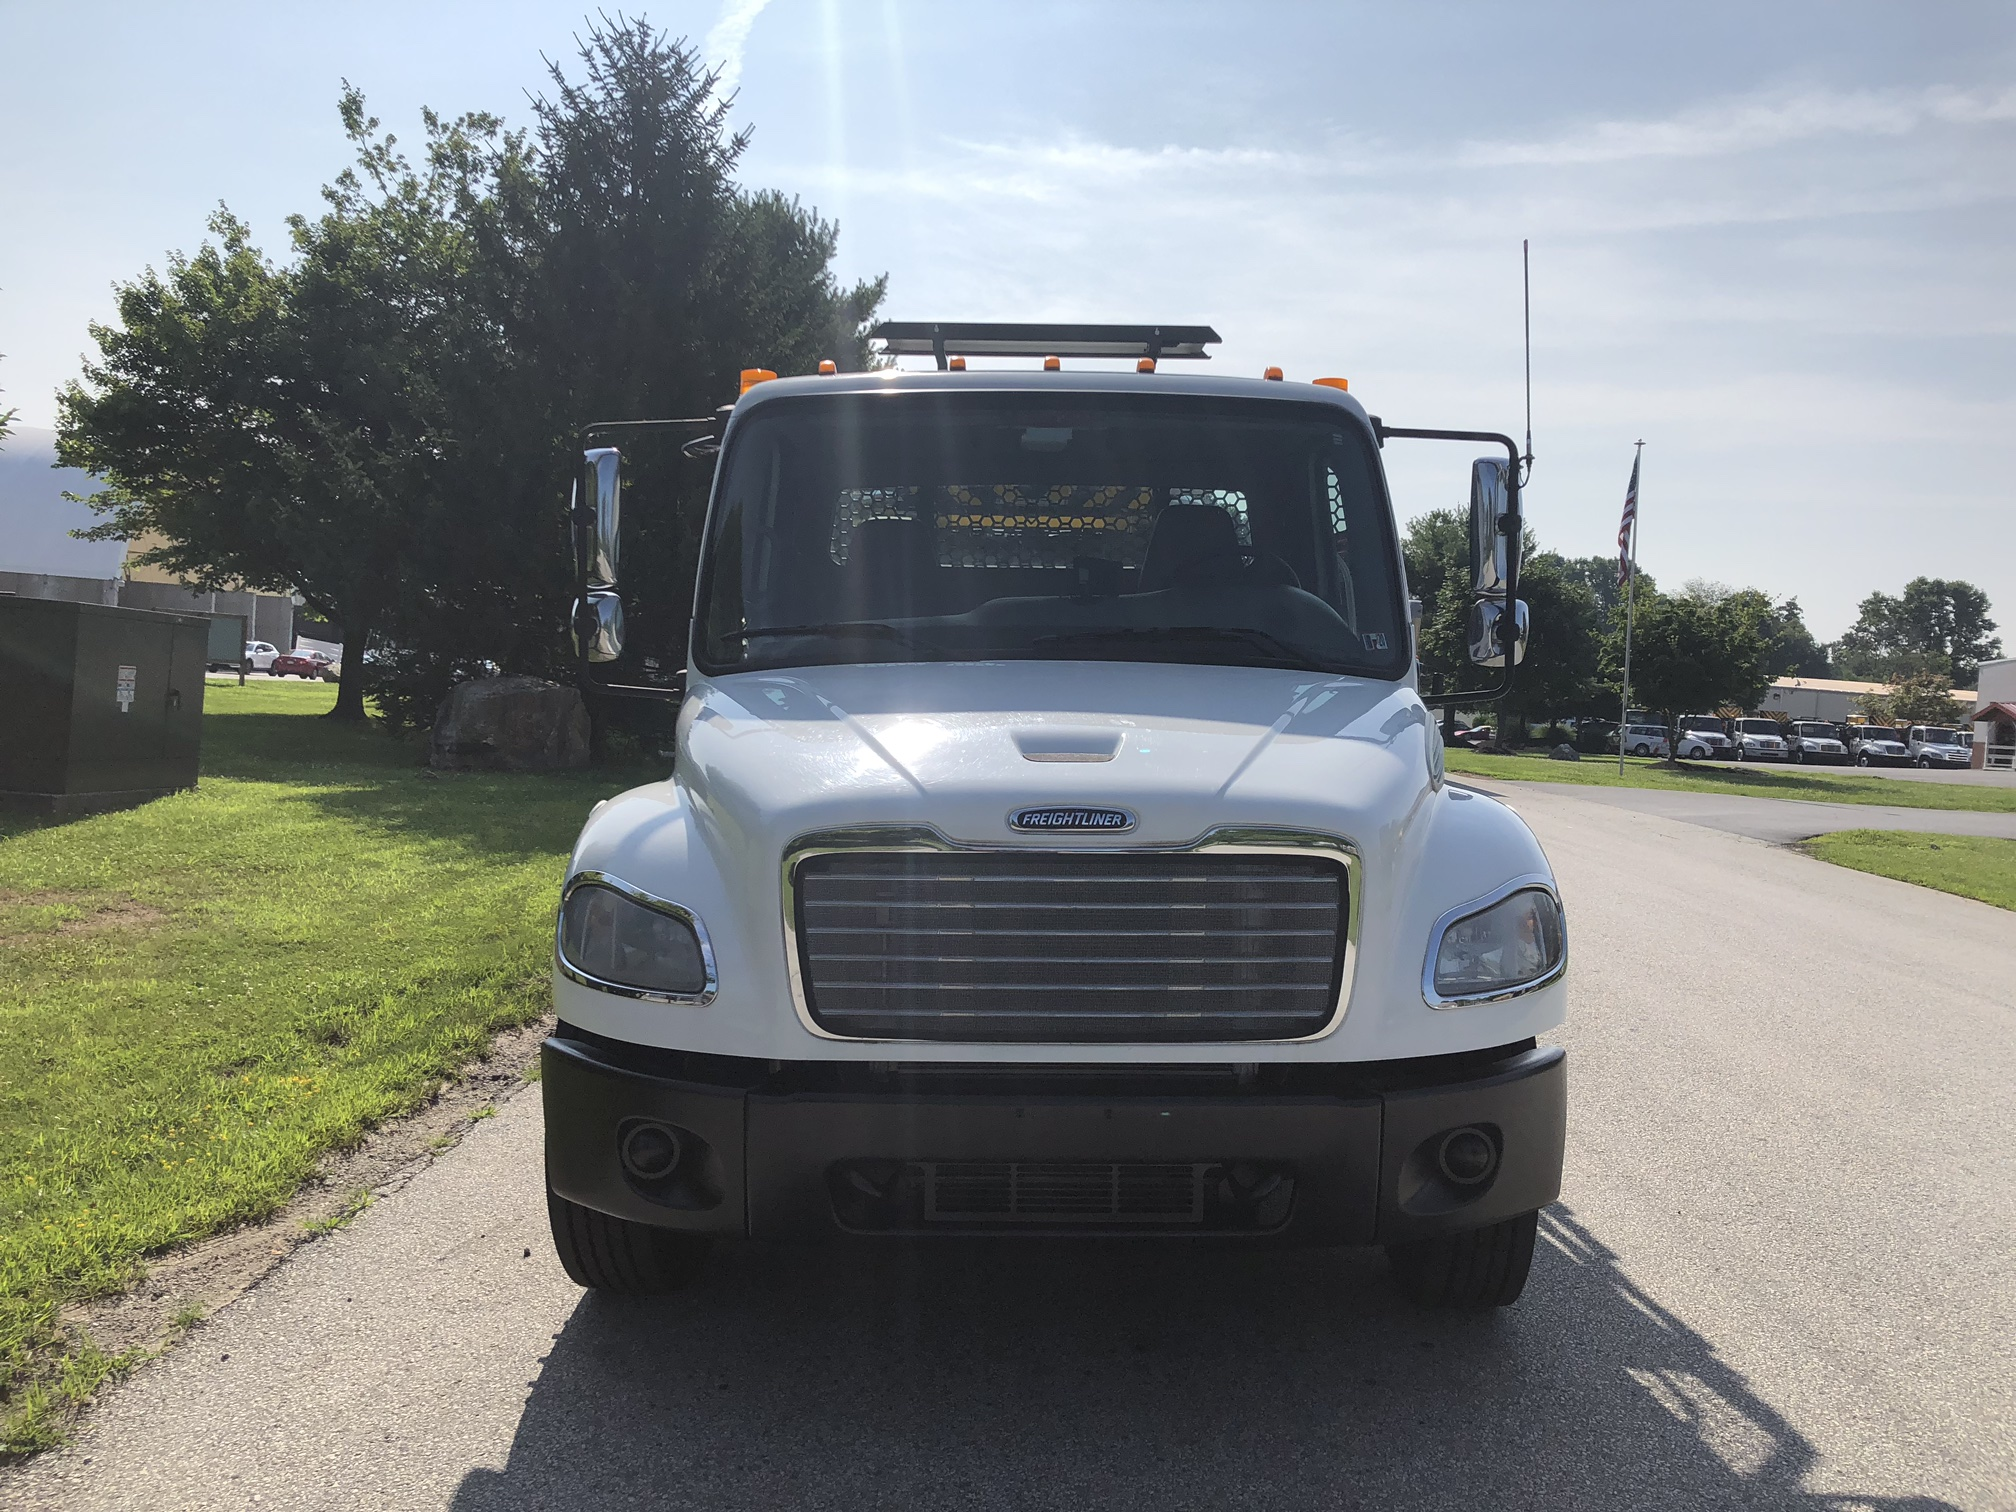 2012 Freightliner M2 Attenuator Truck For Sale and Rent J